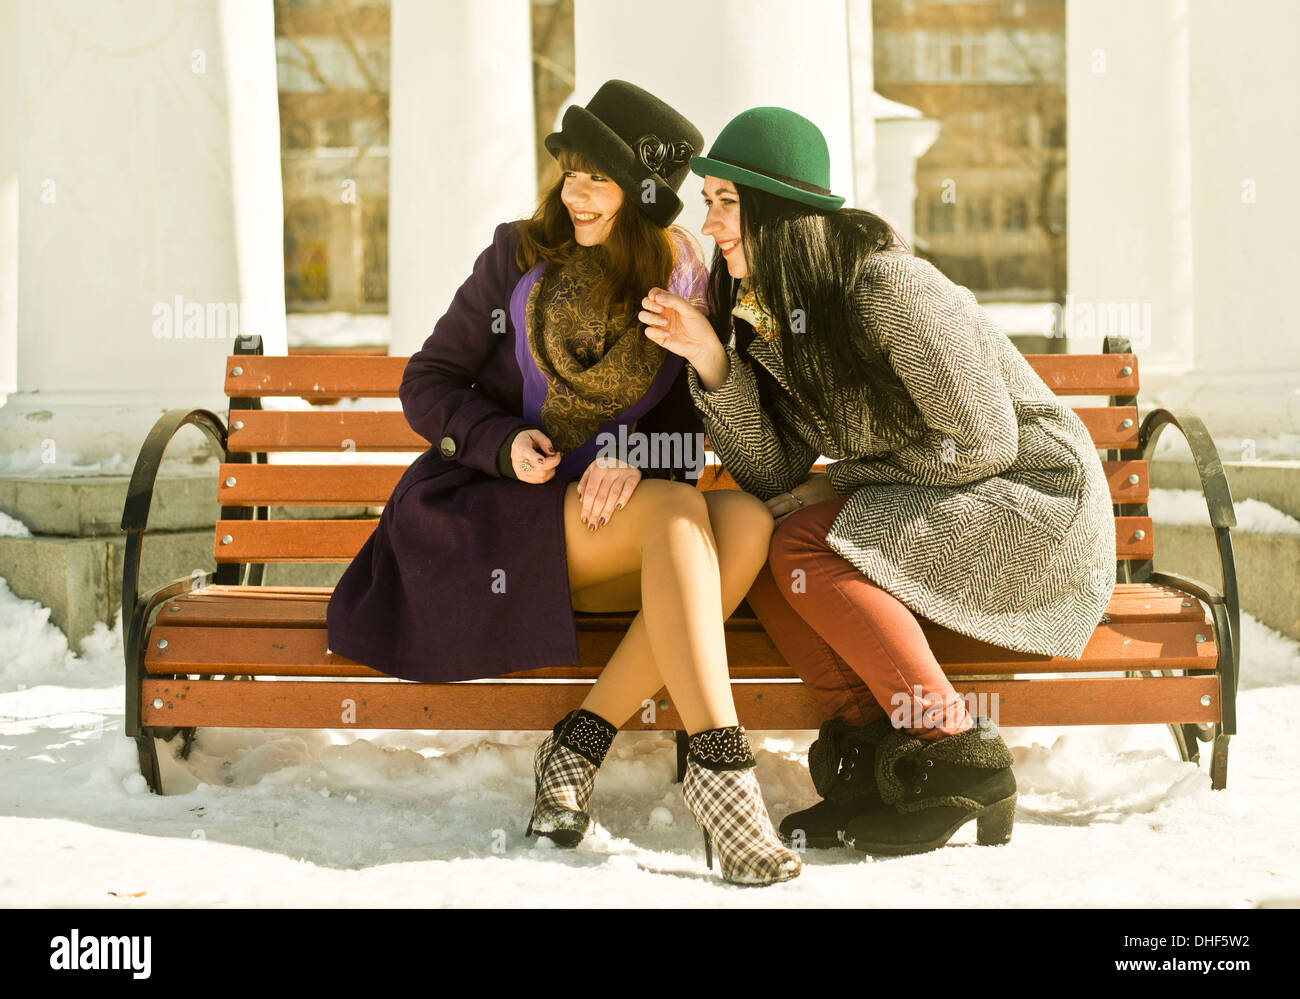 Two young women sitting on park bench in snow - Stock Image